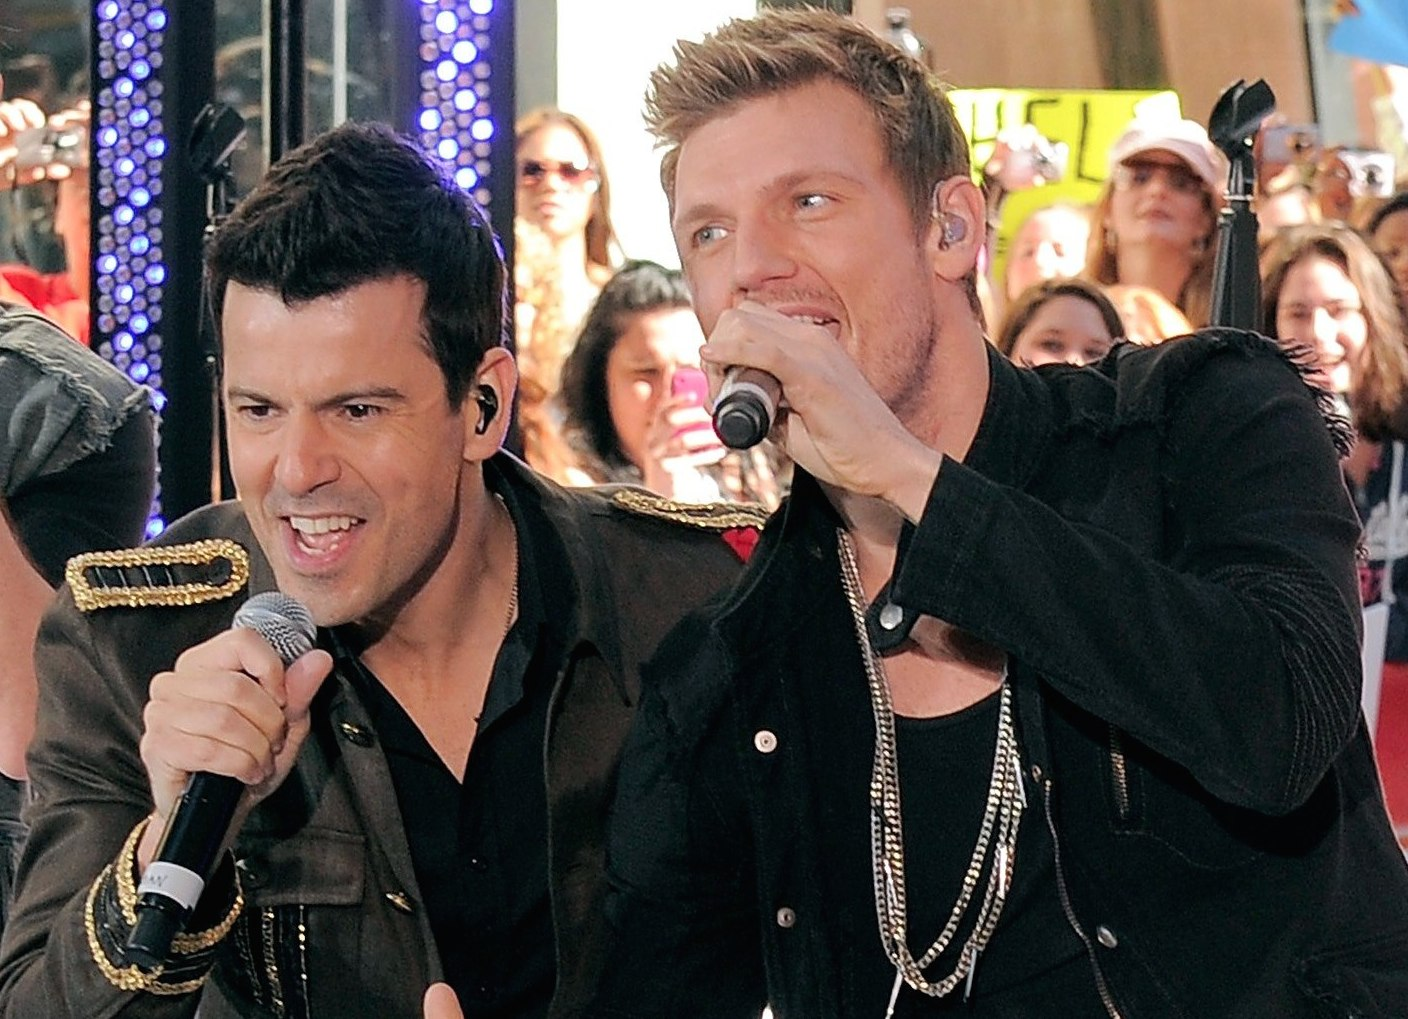 Boy Band Dream Come True! Nick Carter & Jordan Knight Form New Duo